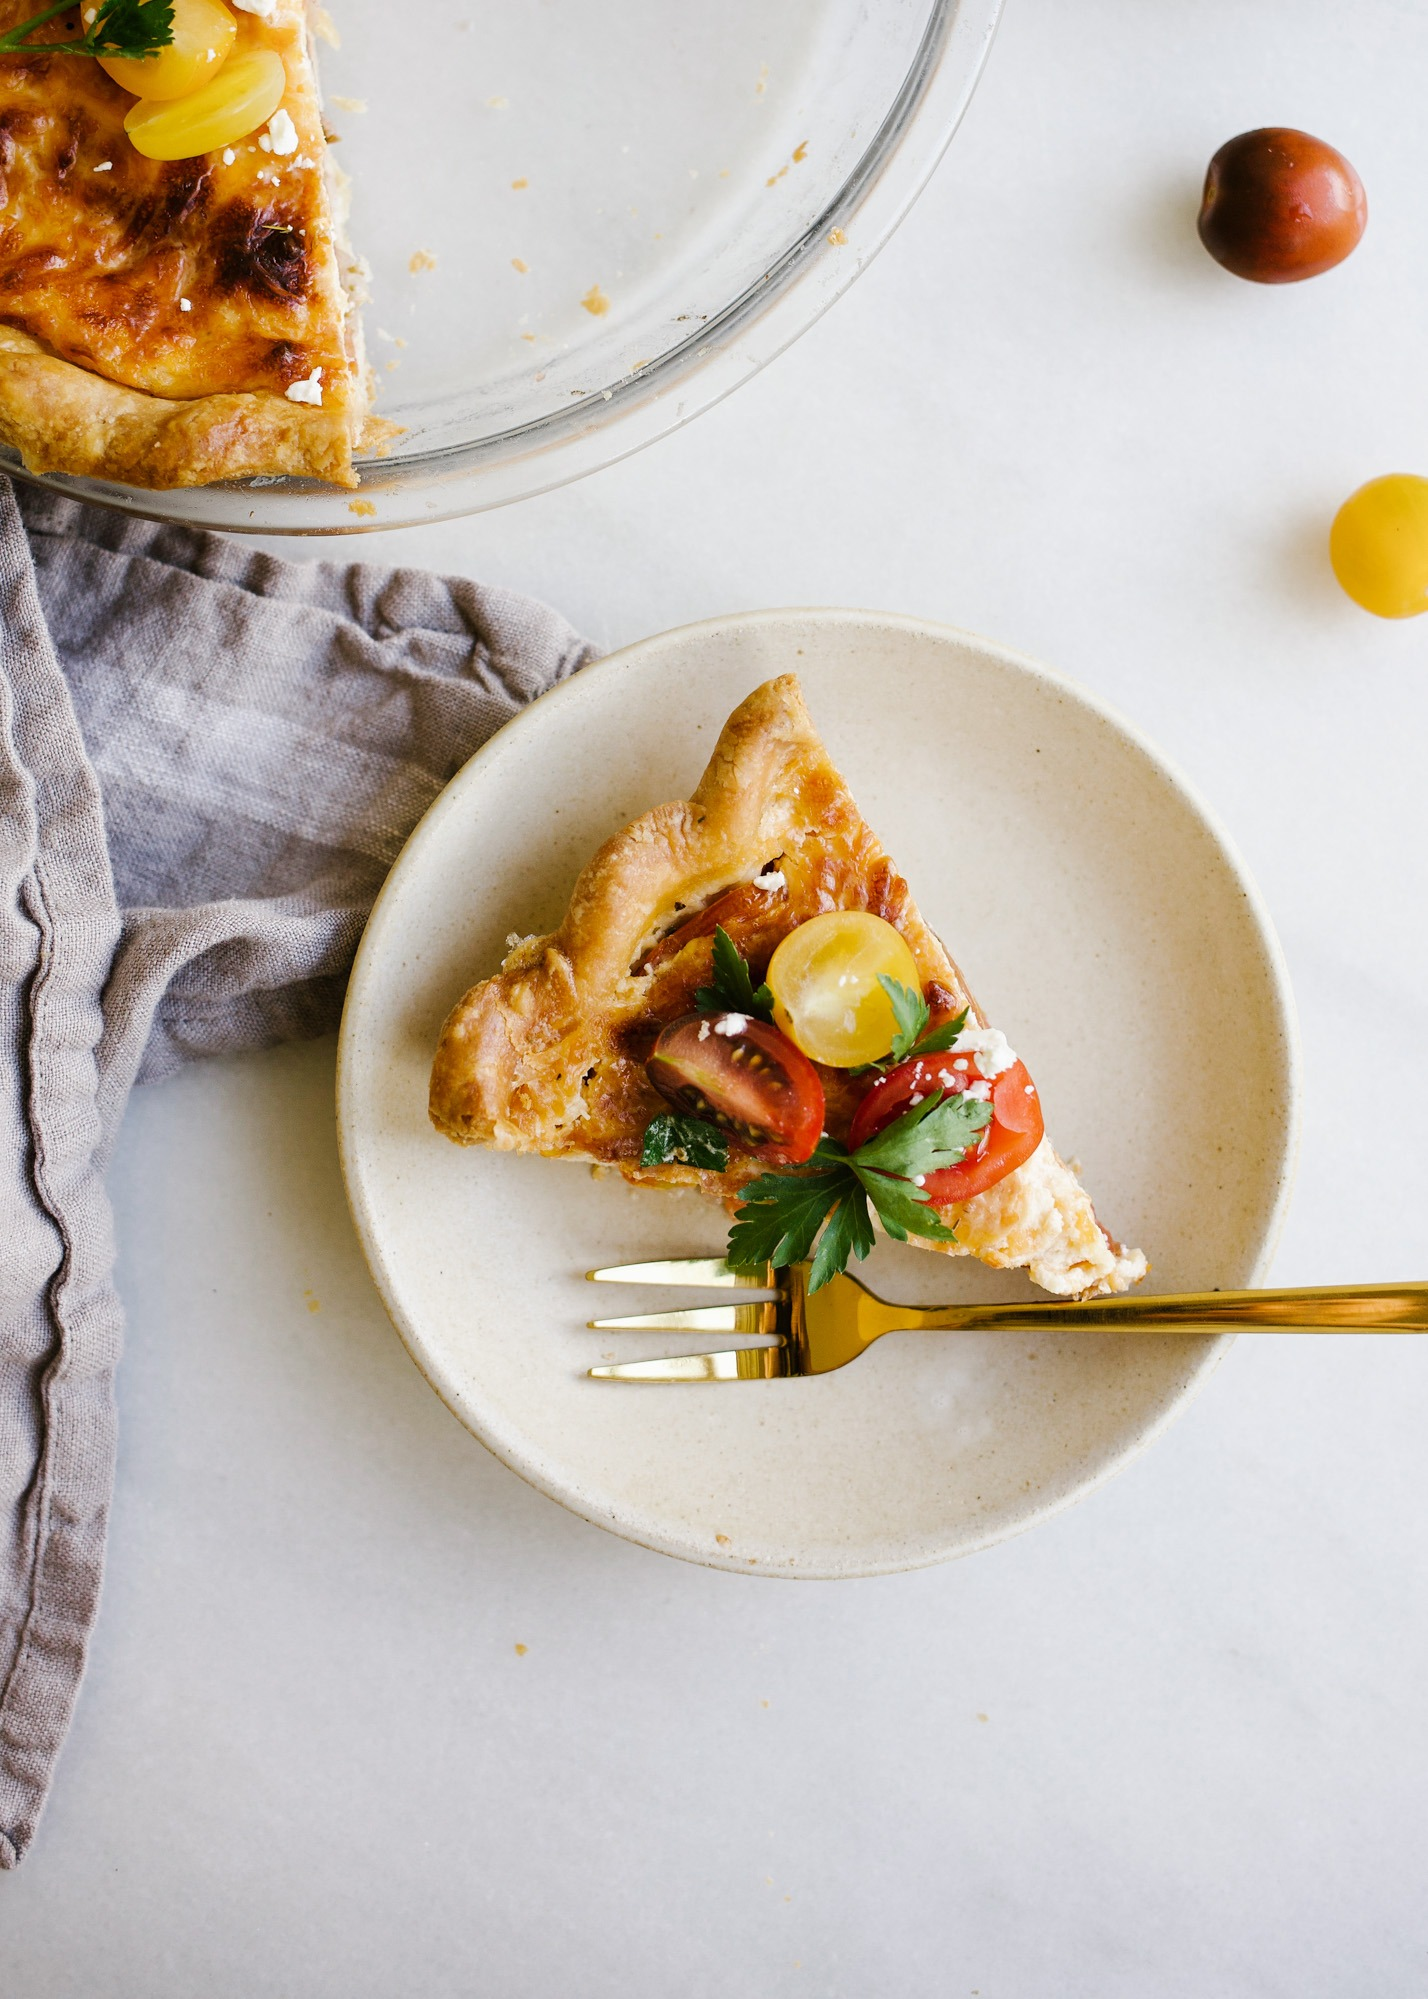 Tomato Pie by Wood and Spoon. This is a simple summer pie of fresh farm tomatoes, cheddar cheese, Italian herbs, and a buttery flaky crust! Learn how simple it is to make this savory pie that makes for a terrific lunch or dinner option! Serve this pie for summer gatherings! Learn more on thewoodandspoon.com